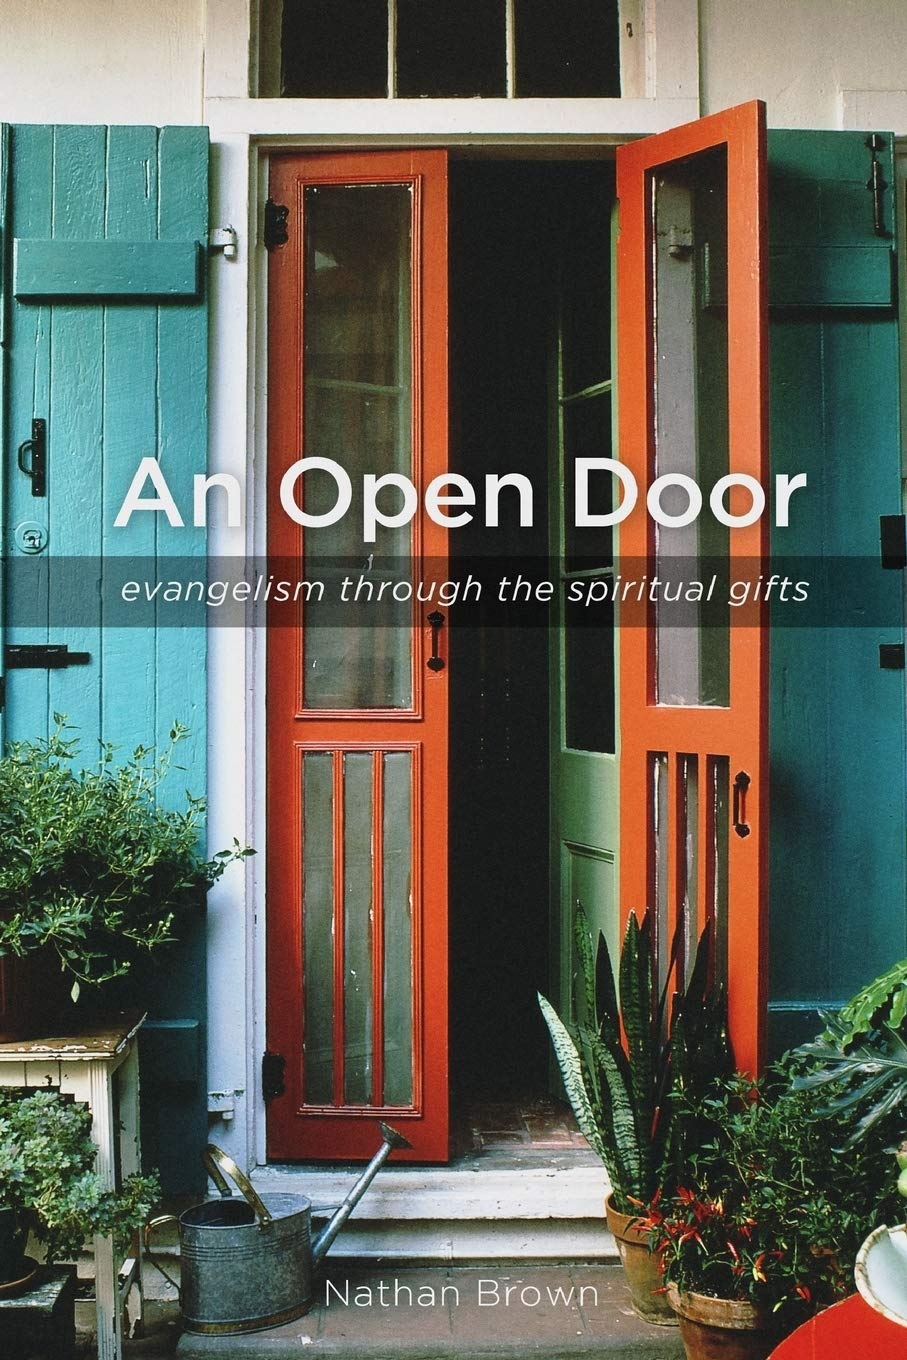 An Open Door: Evangelism through the Spiritual Gifts: Amazon.es: Brown, Nathan: Libros en idiomas extranjeros